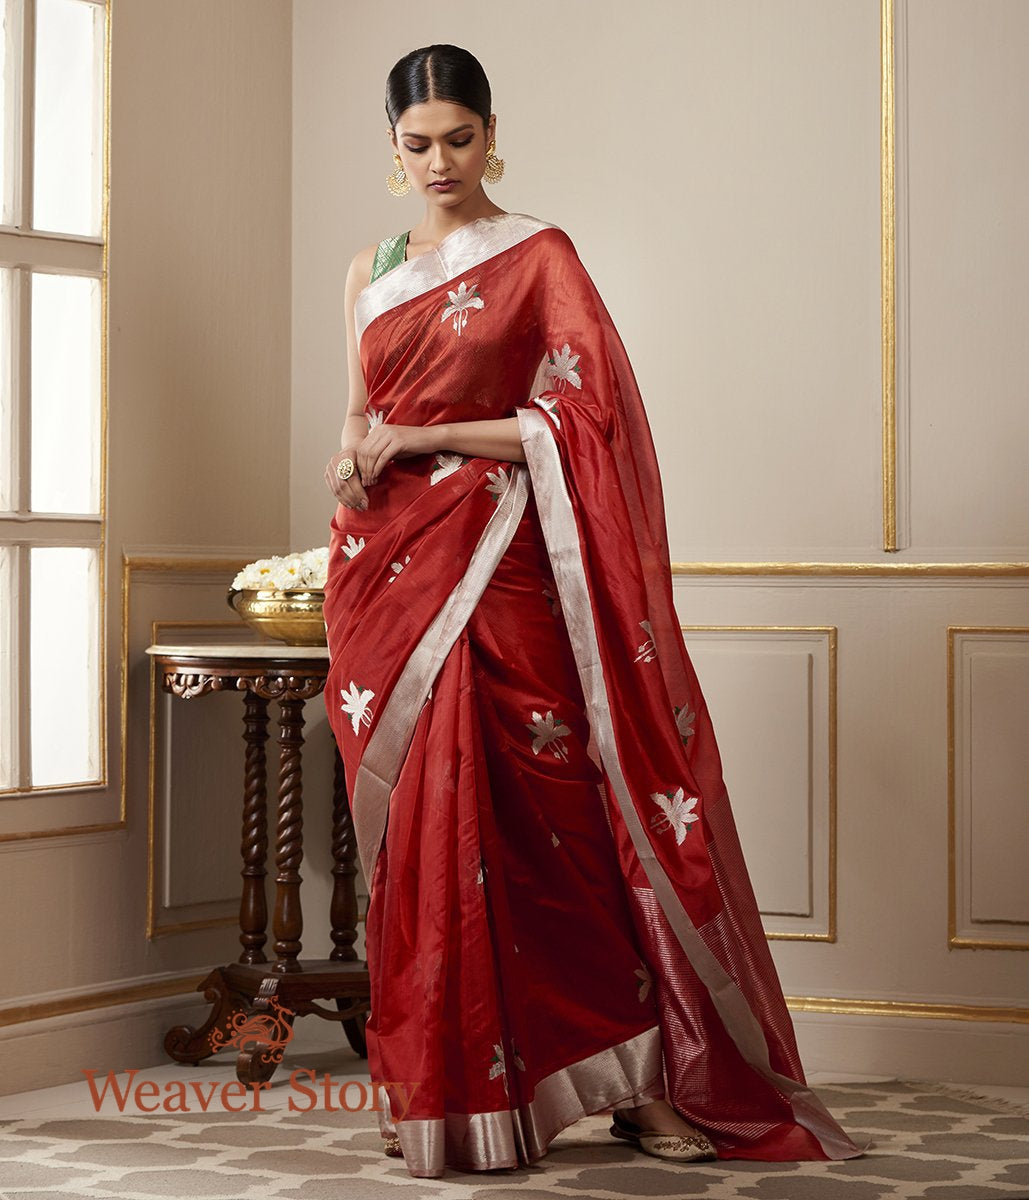 Handwoven Brick Red Chanderi Silk Saree with Birds on a Tree